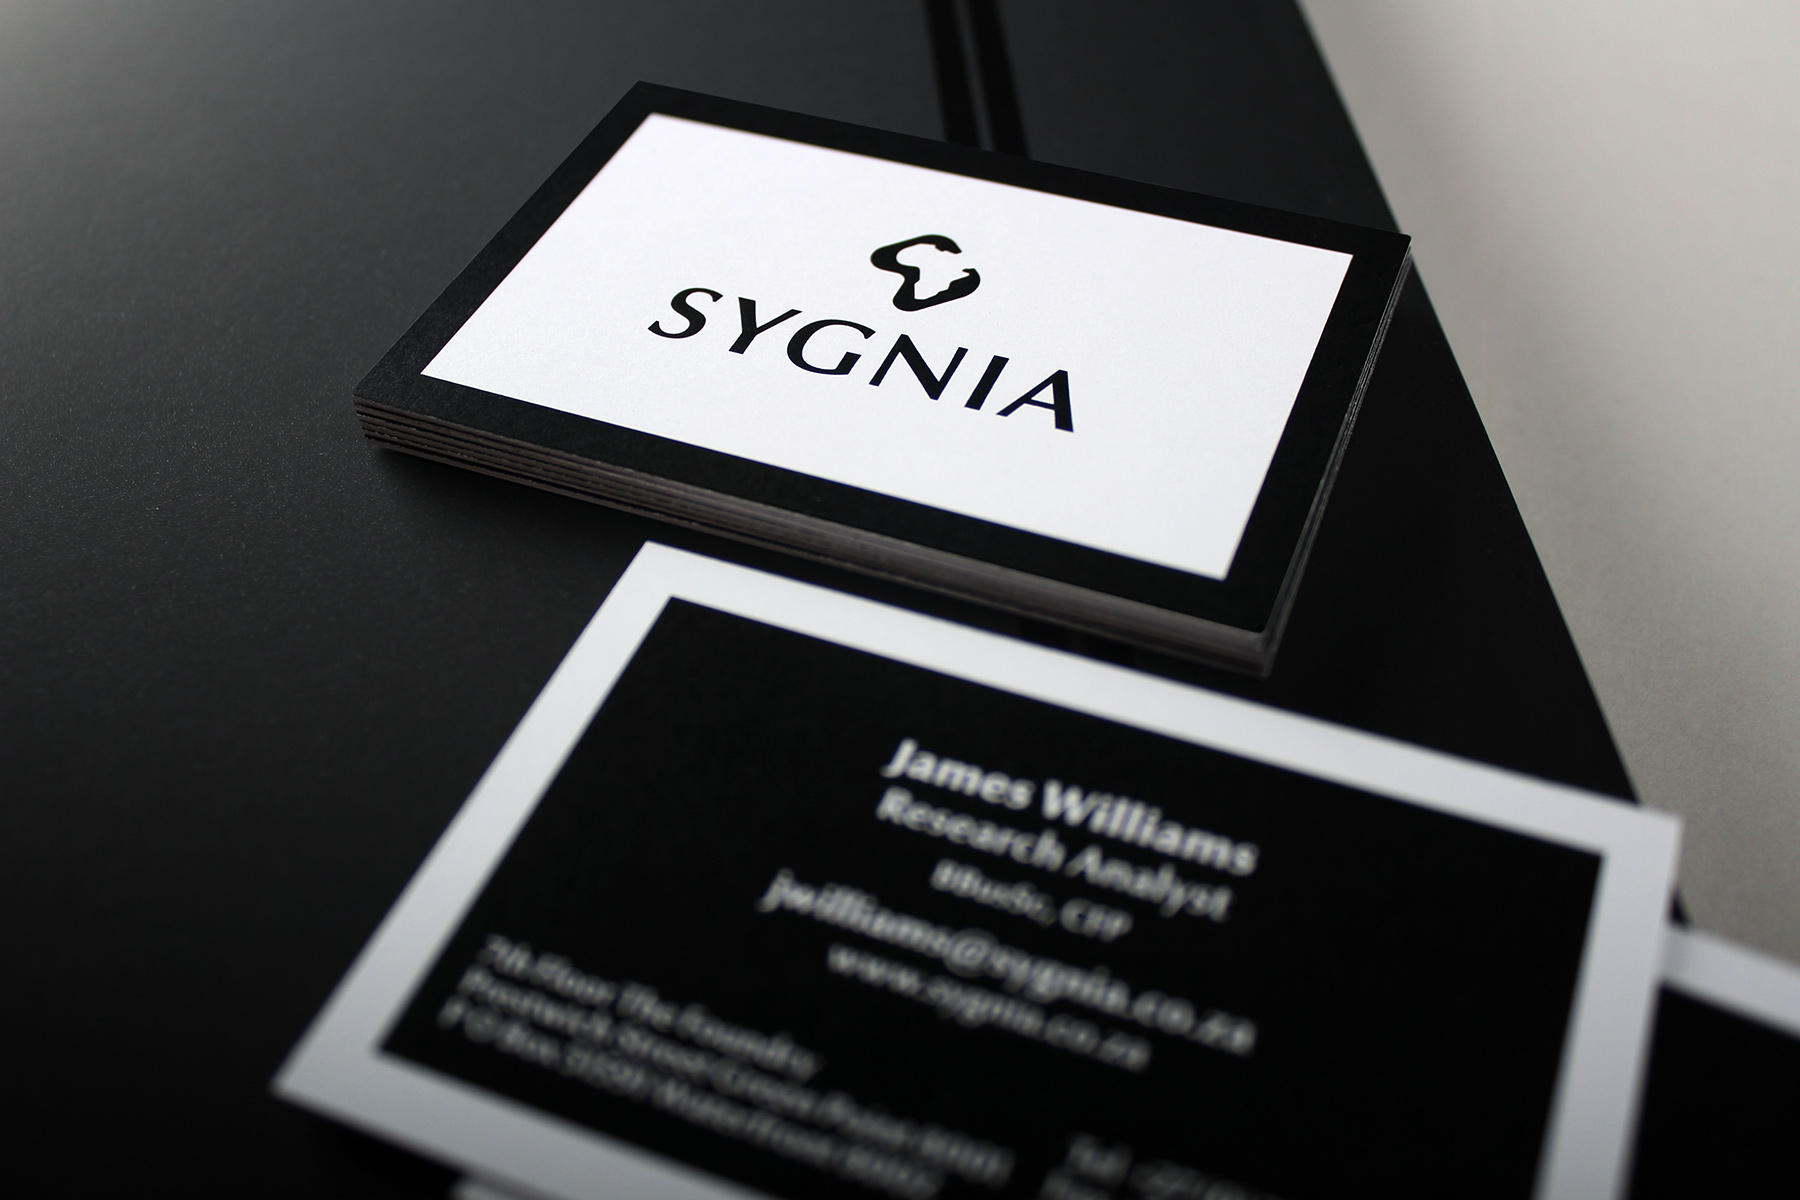 At a high level, the corporate identity reverts to a more minimal feel, with an emphasis on quality print and materials.